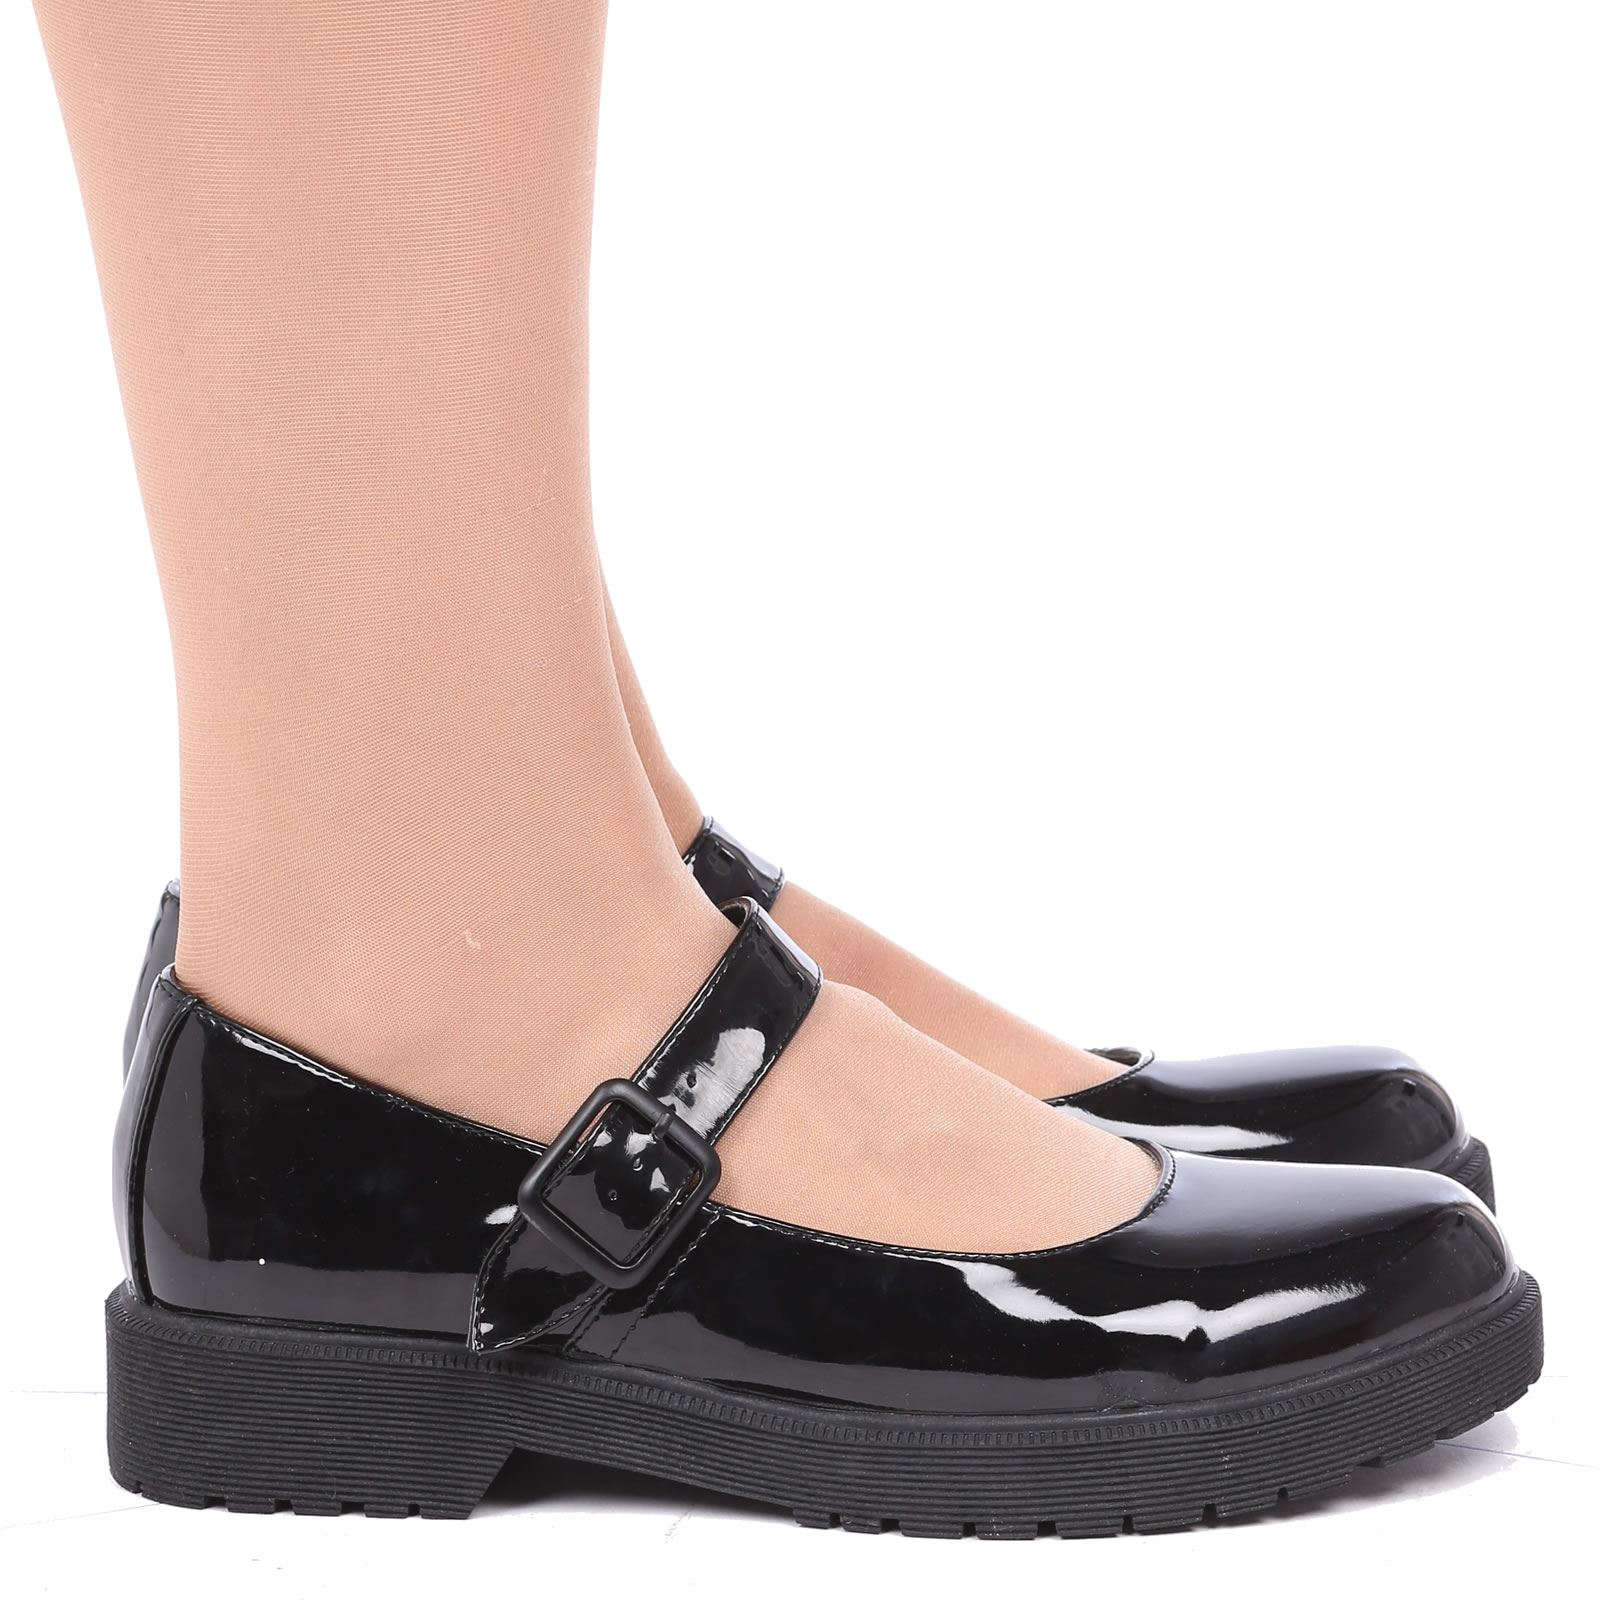 Free shipping and great prices for shoes, boots, sandals, handbags and other accessories at neo-craft.gq!